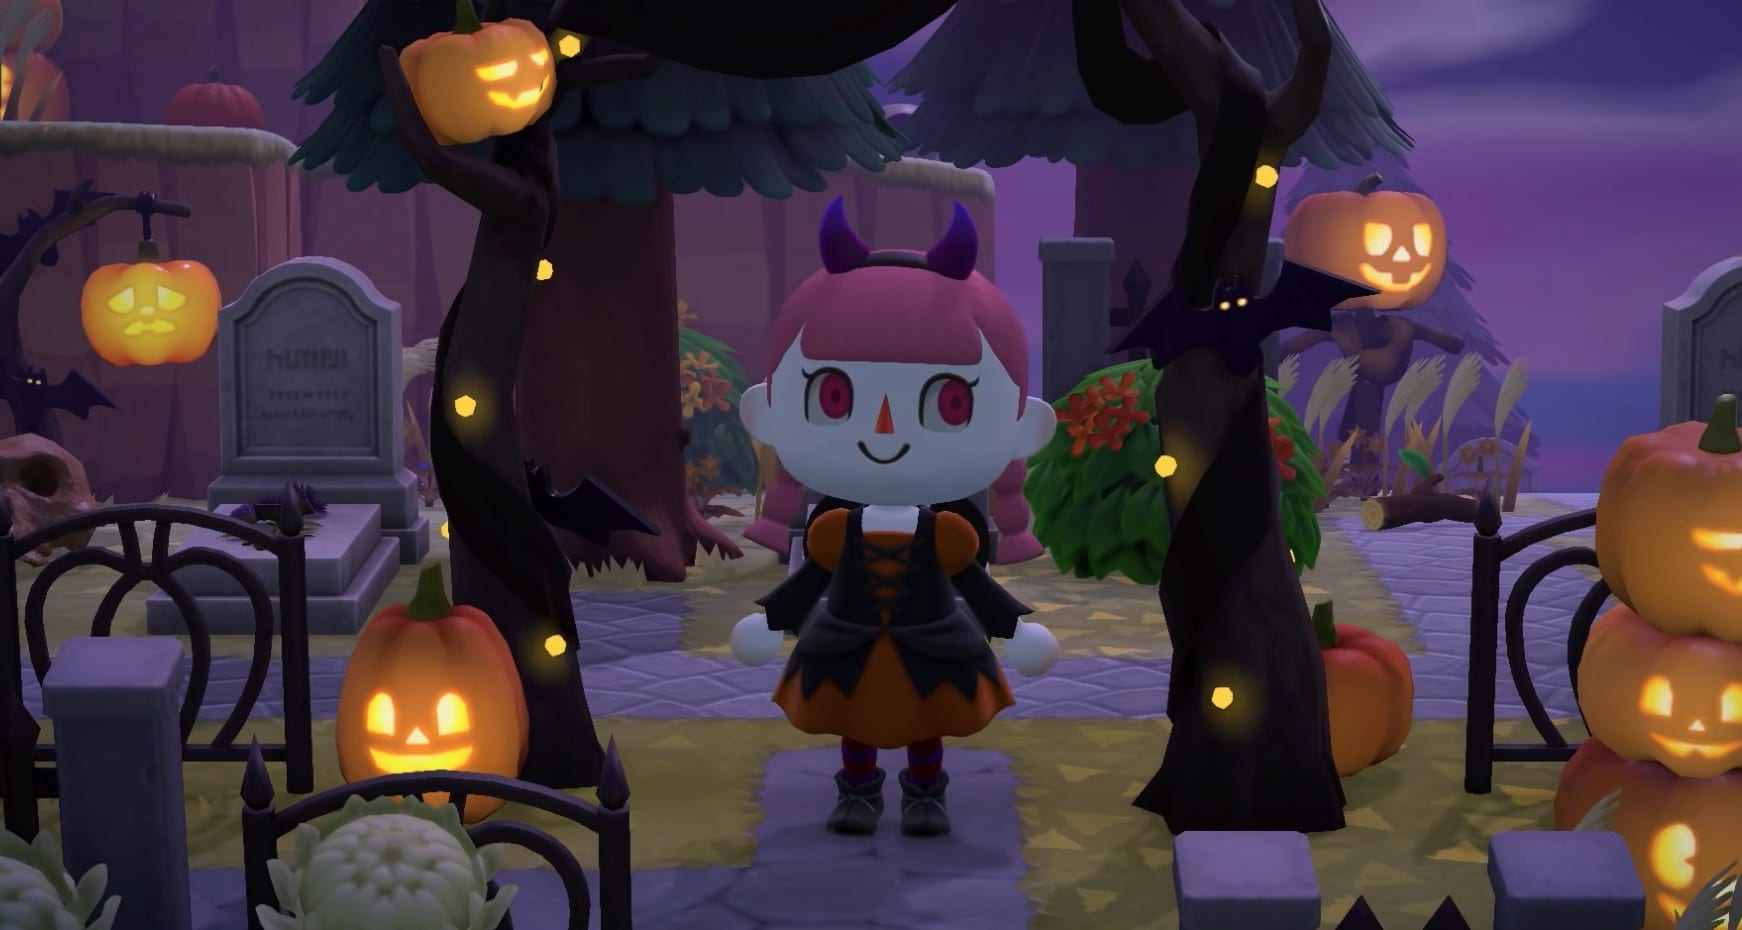 animal crossing new horizons, how to get yellow perch